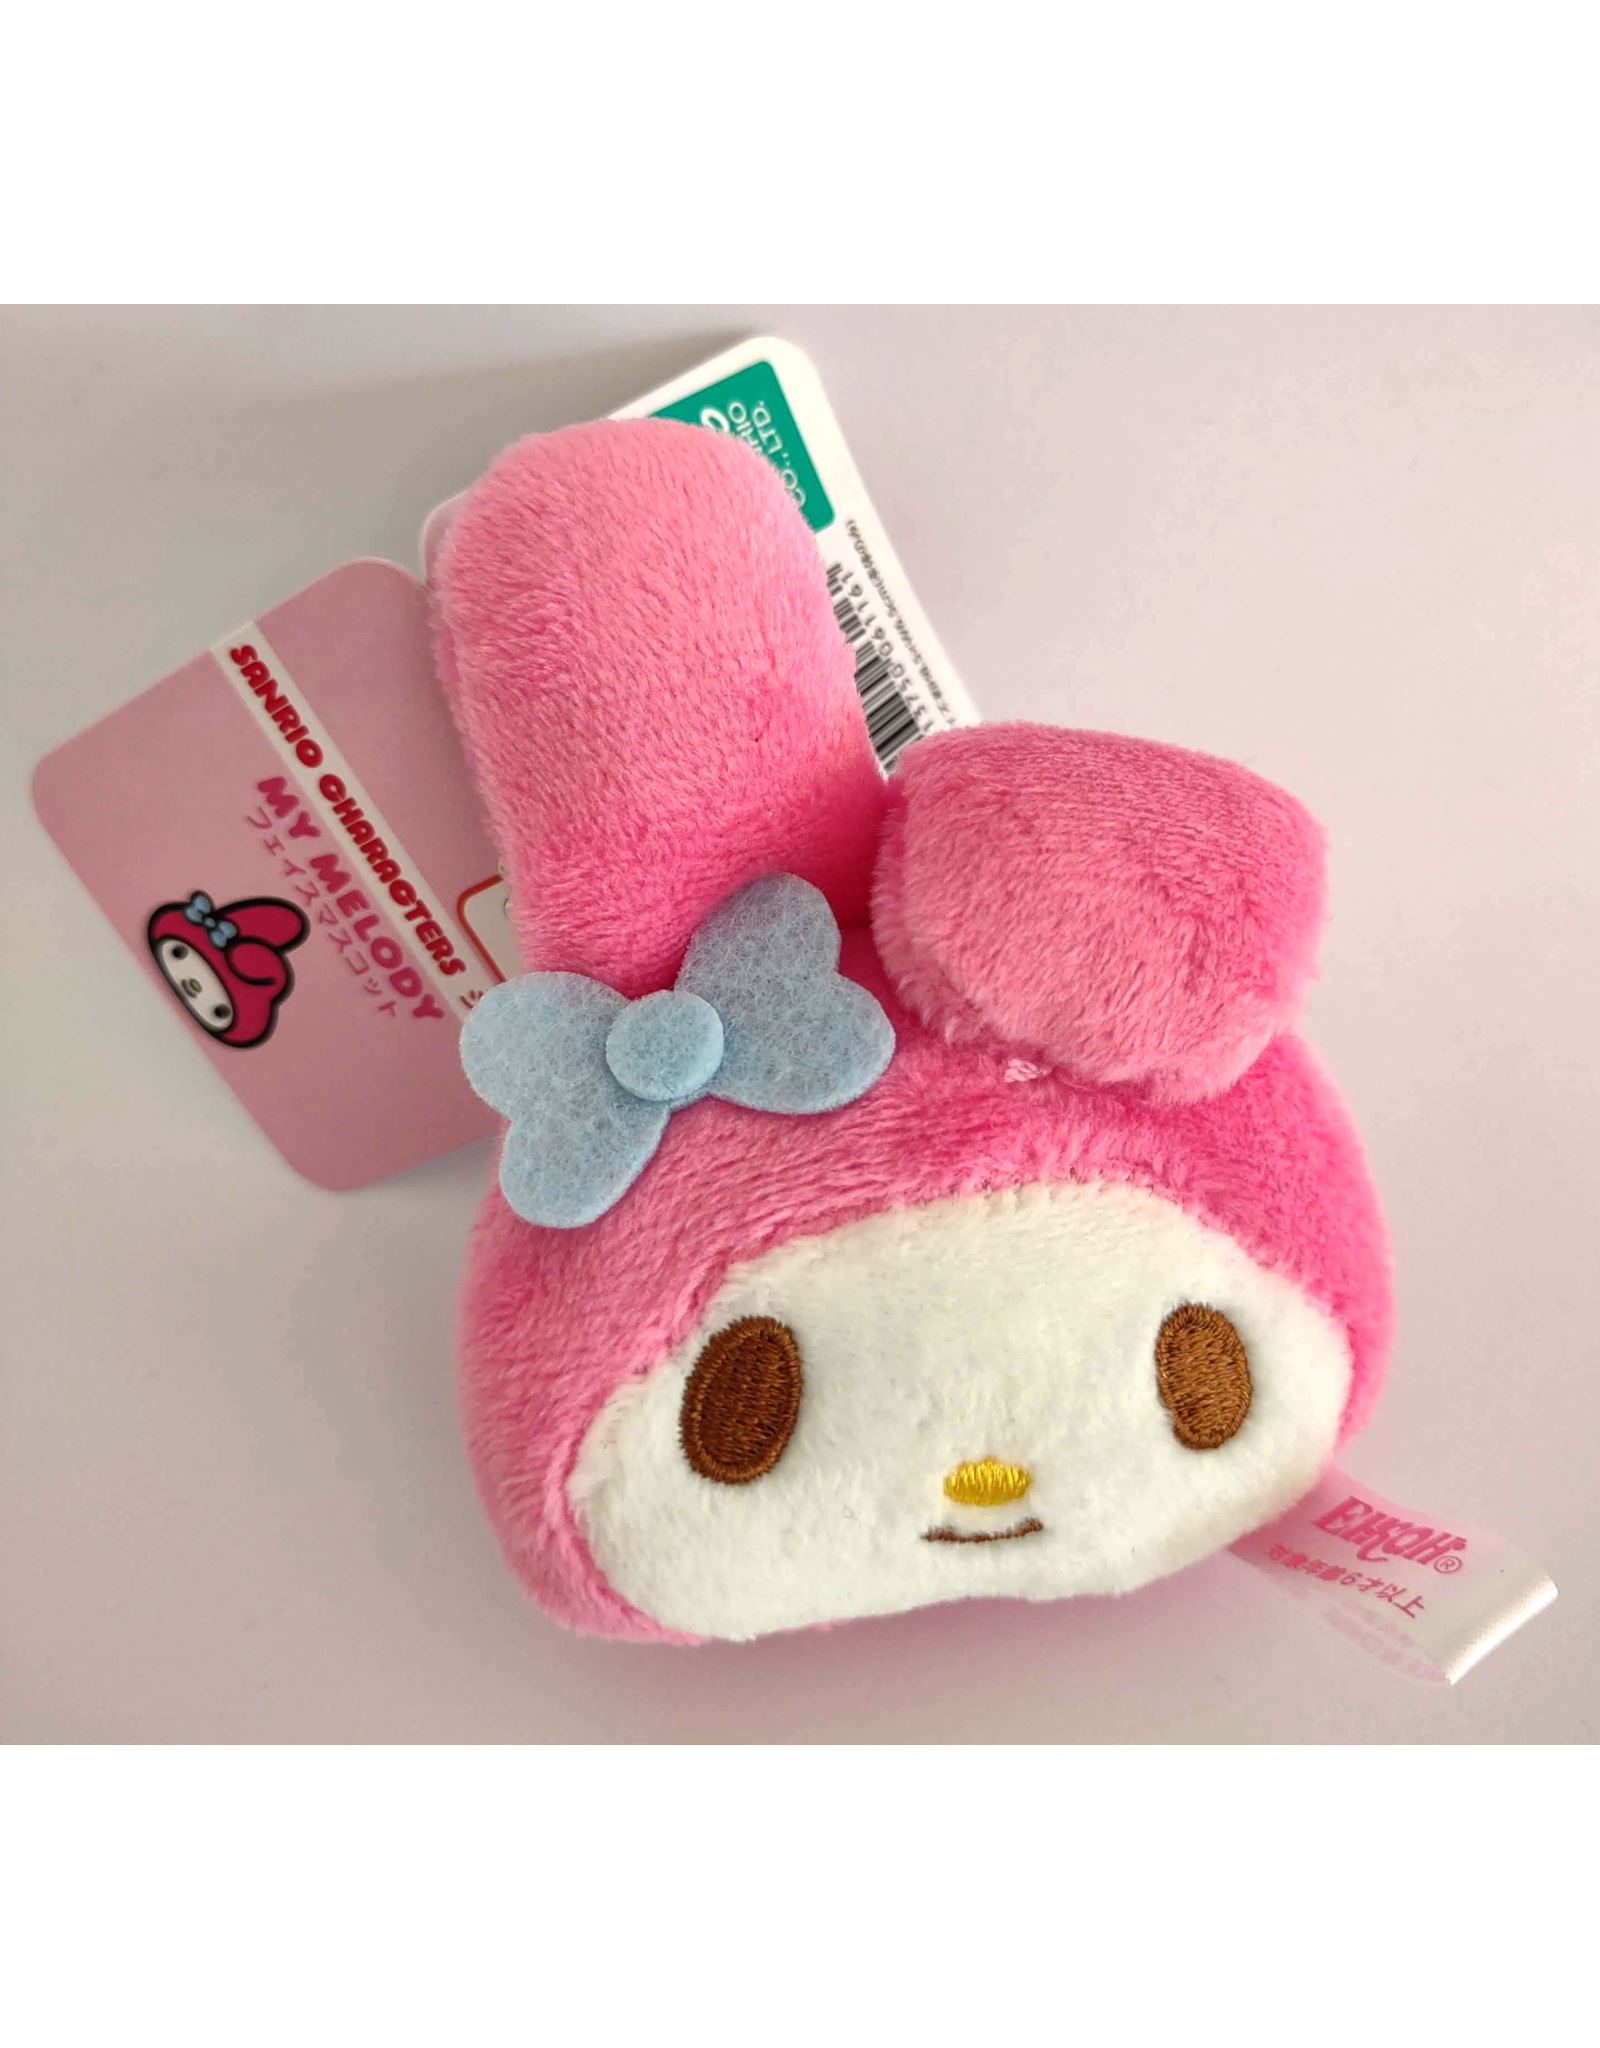 Sanrio Characters - Plush Face Mascot Keychain - My Melody - 5 cm